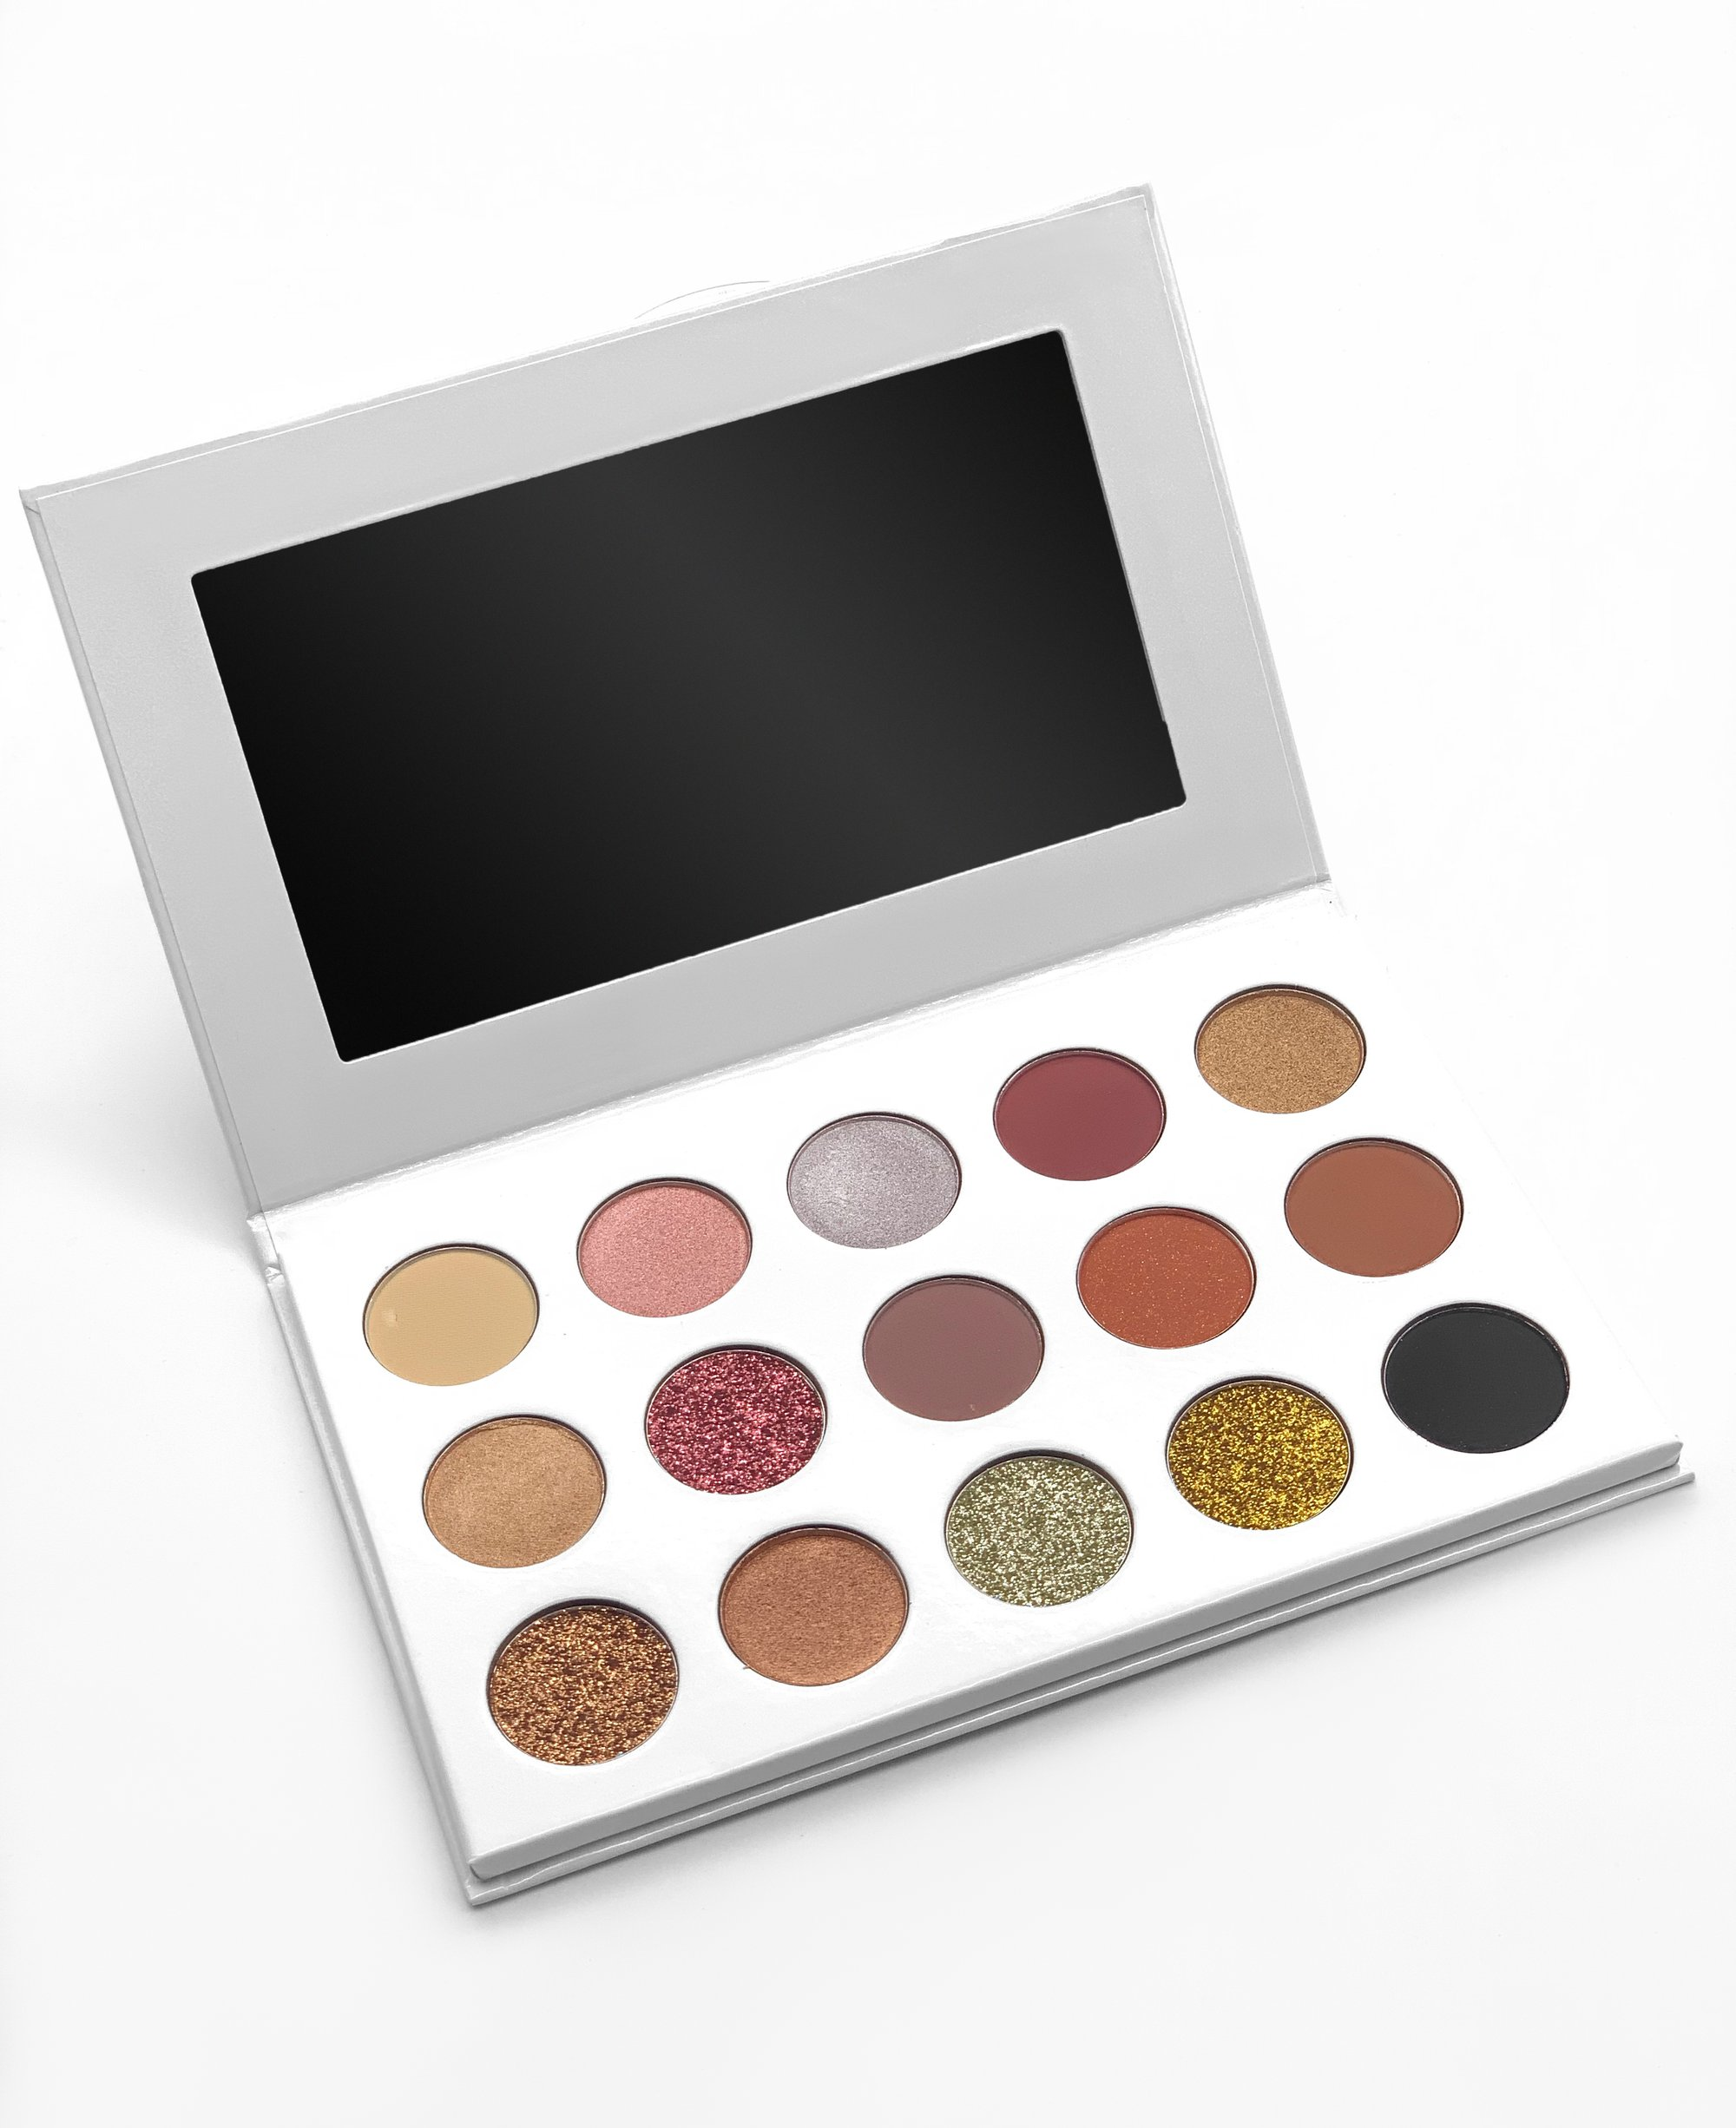 HB's Gift Guide for the Makeup Junkie